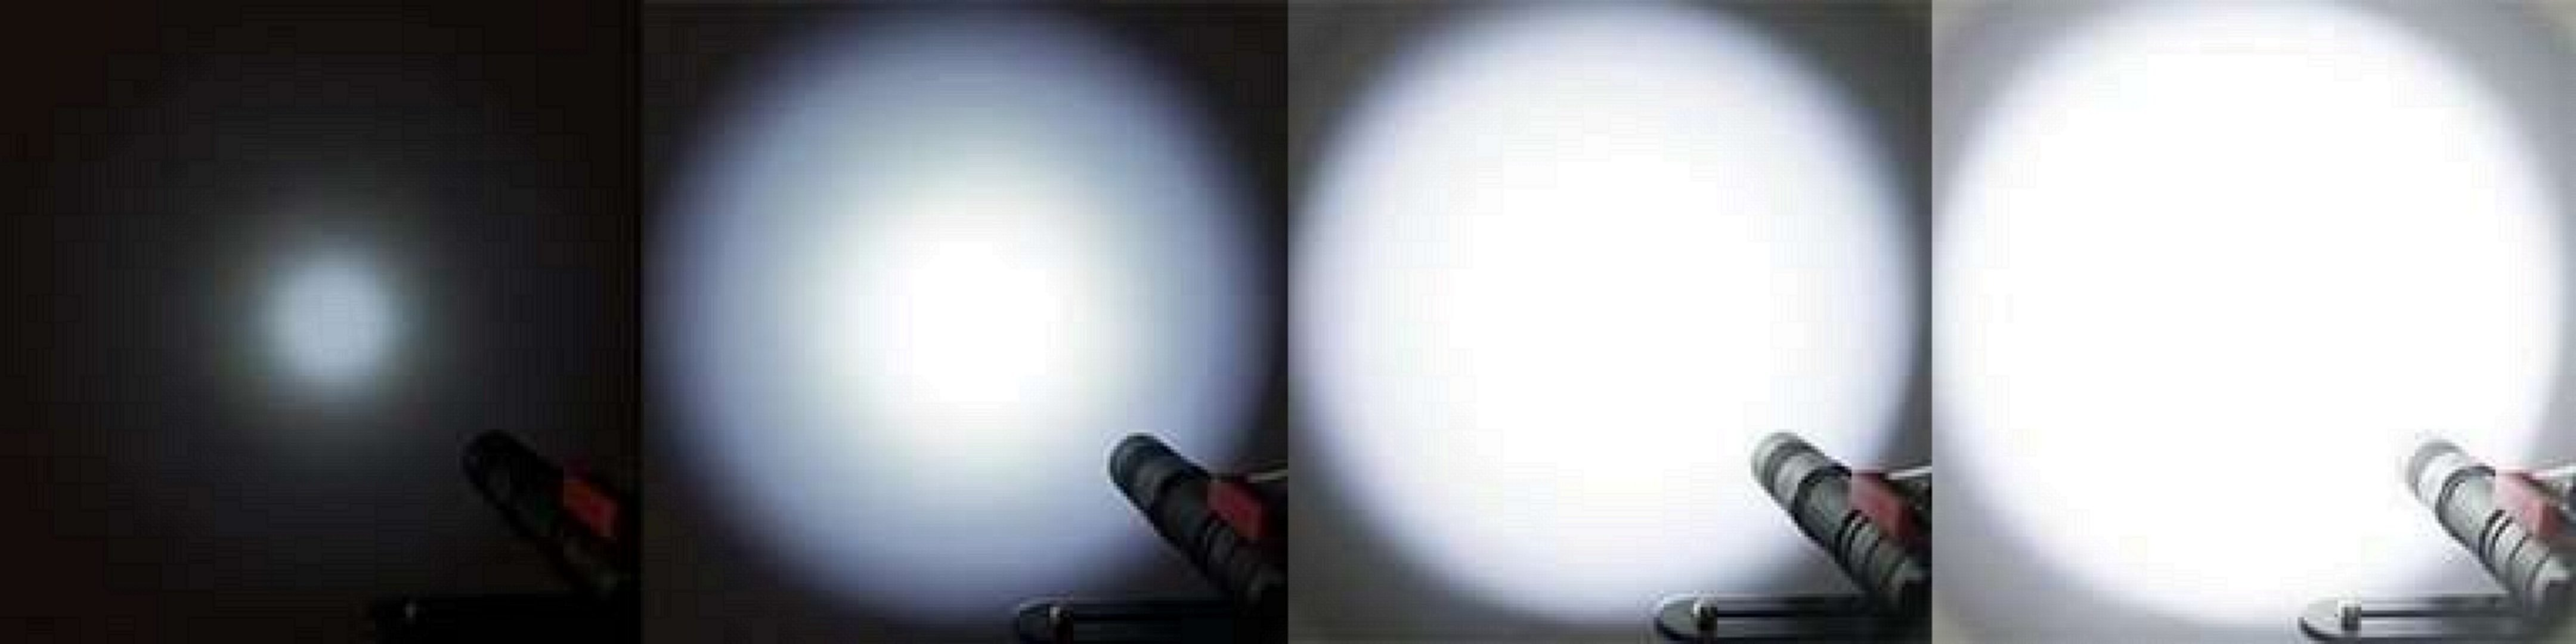 flashlight lumen comparison